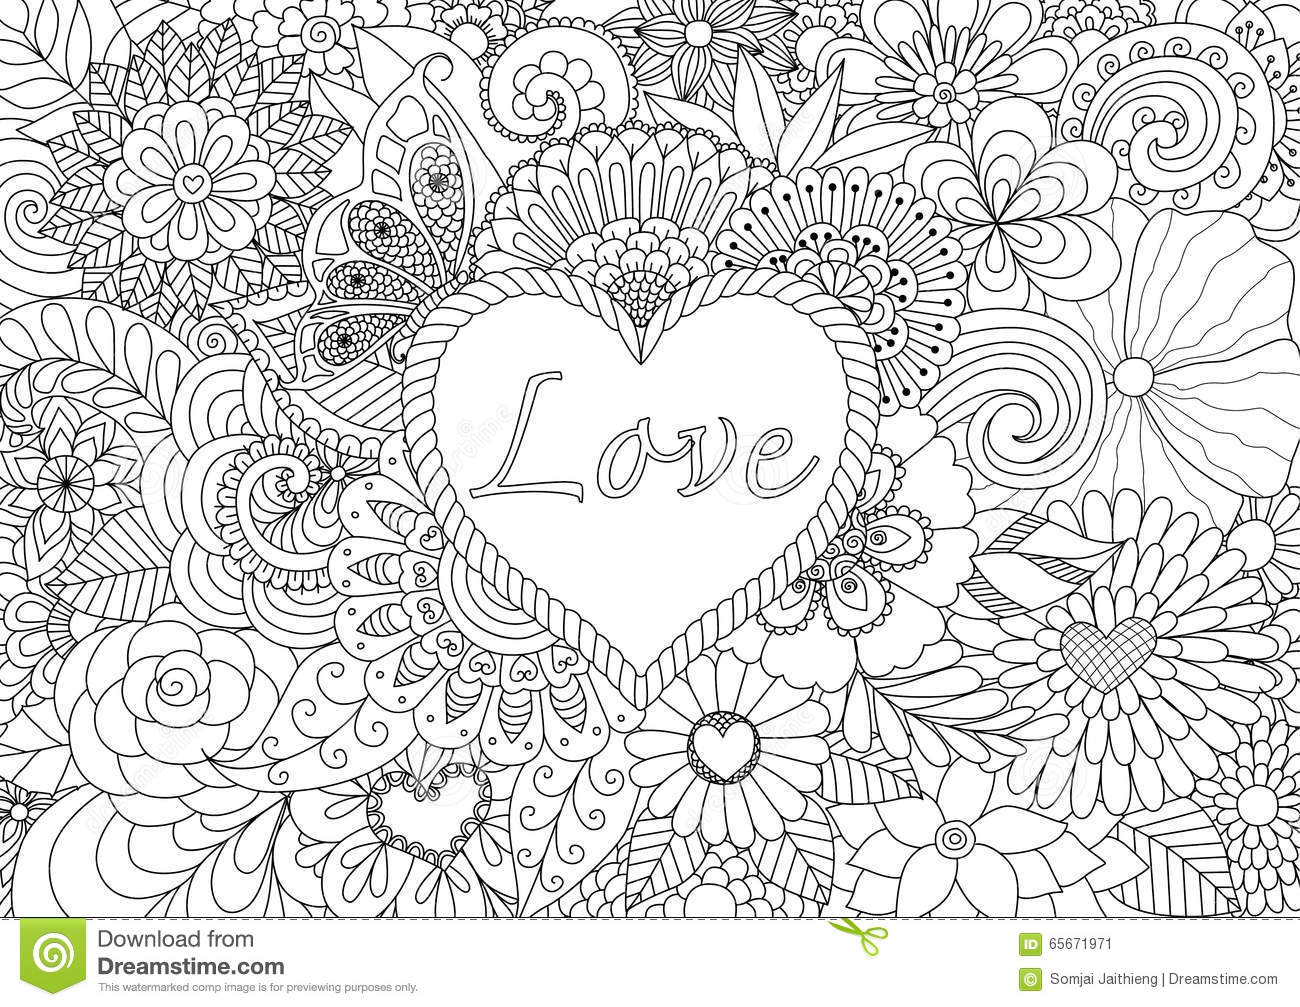 HD wallpapers unique coloring pages for adults